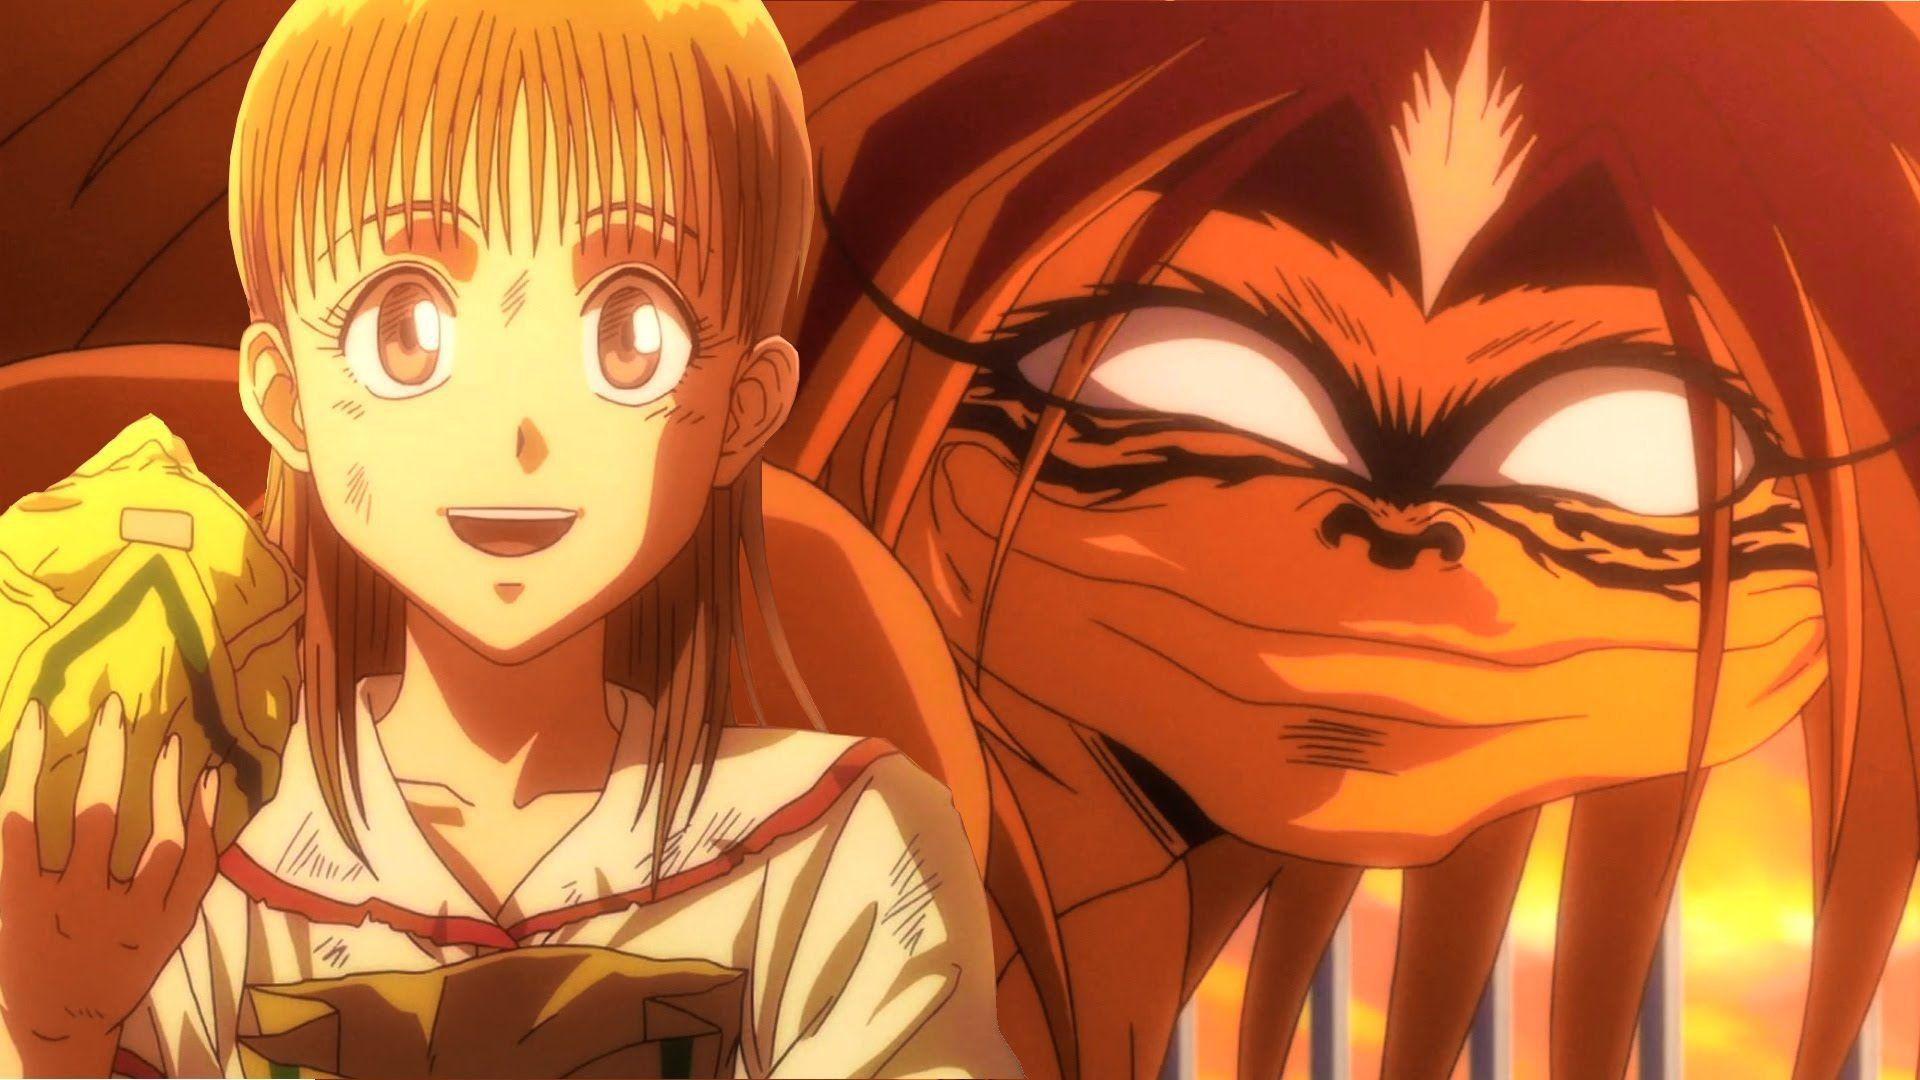 Ushio to Tora Episode 4 うしおととら Anime Review